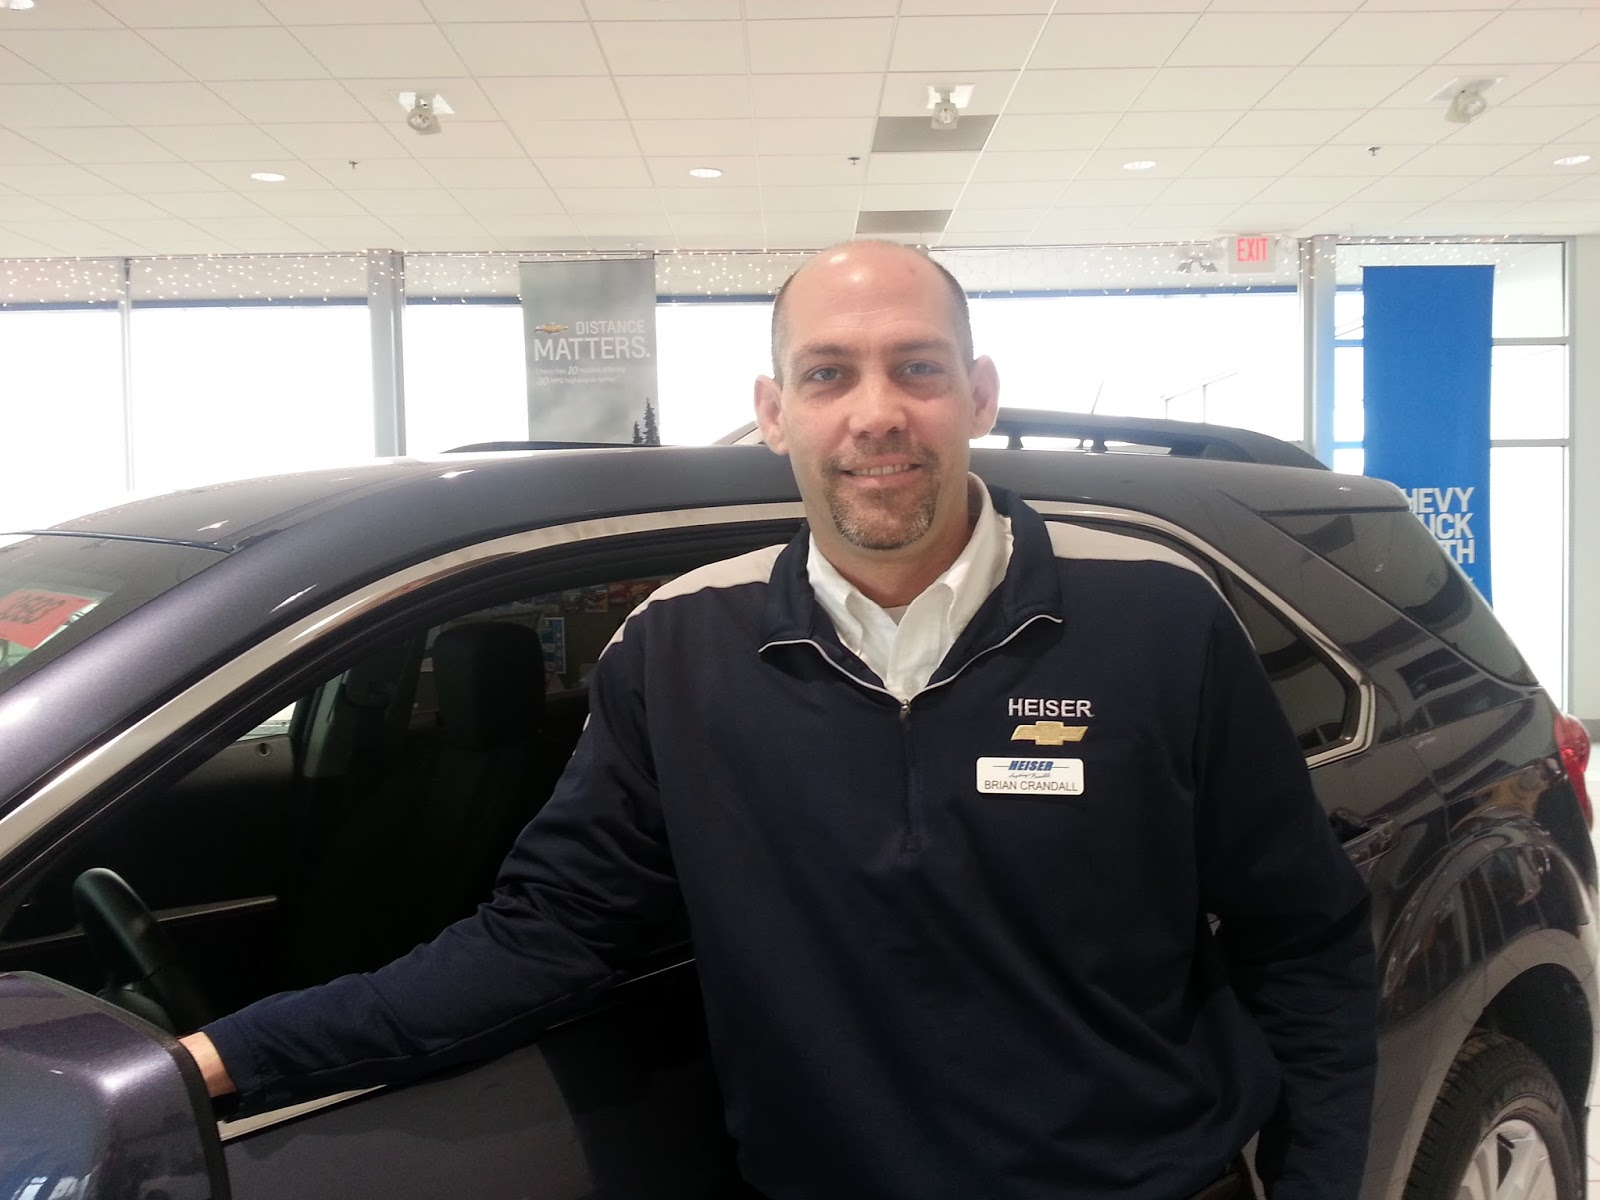 Heiser Chevrolet August 2013 Newsletter 414 327 2300 Chevy Power Steering Ckets Brian Crandall Provides Out Of The Ballpark Leadership At